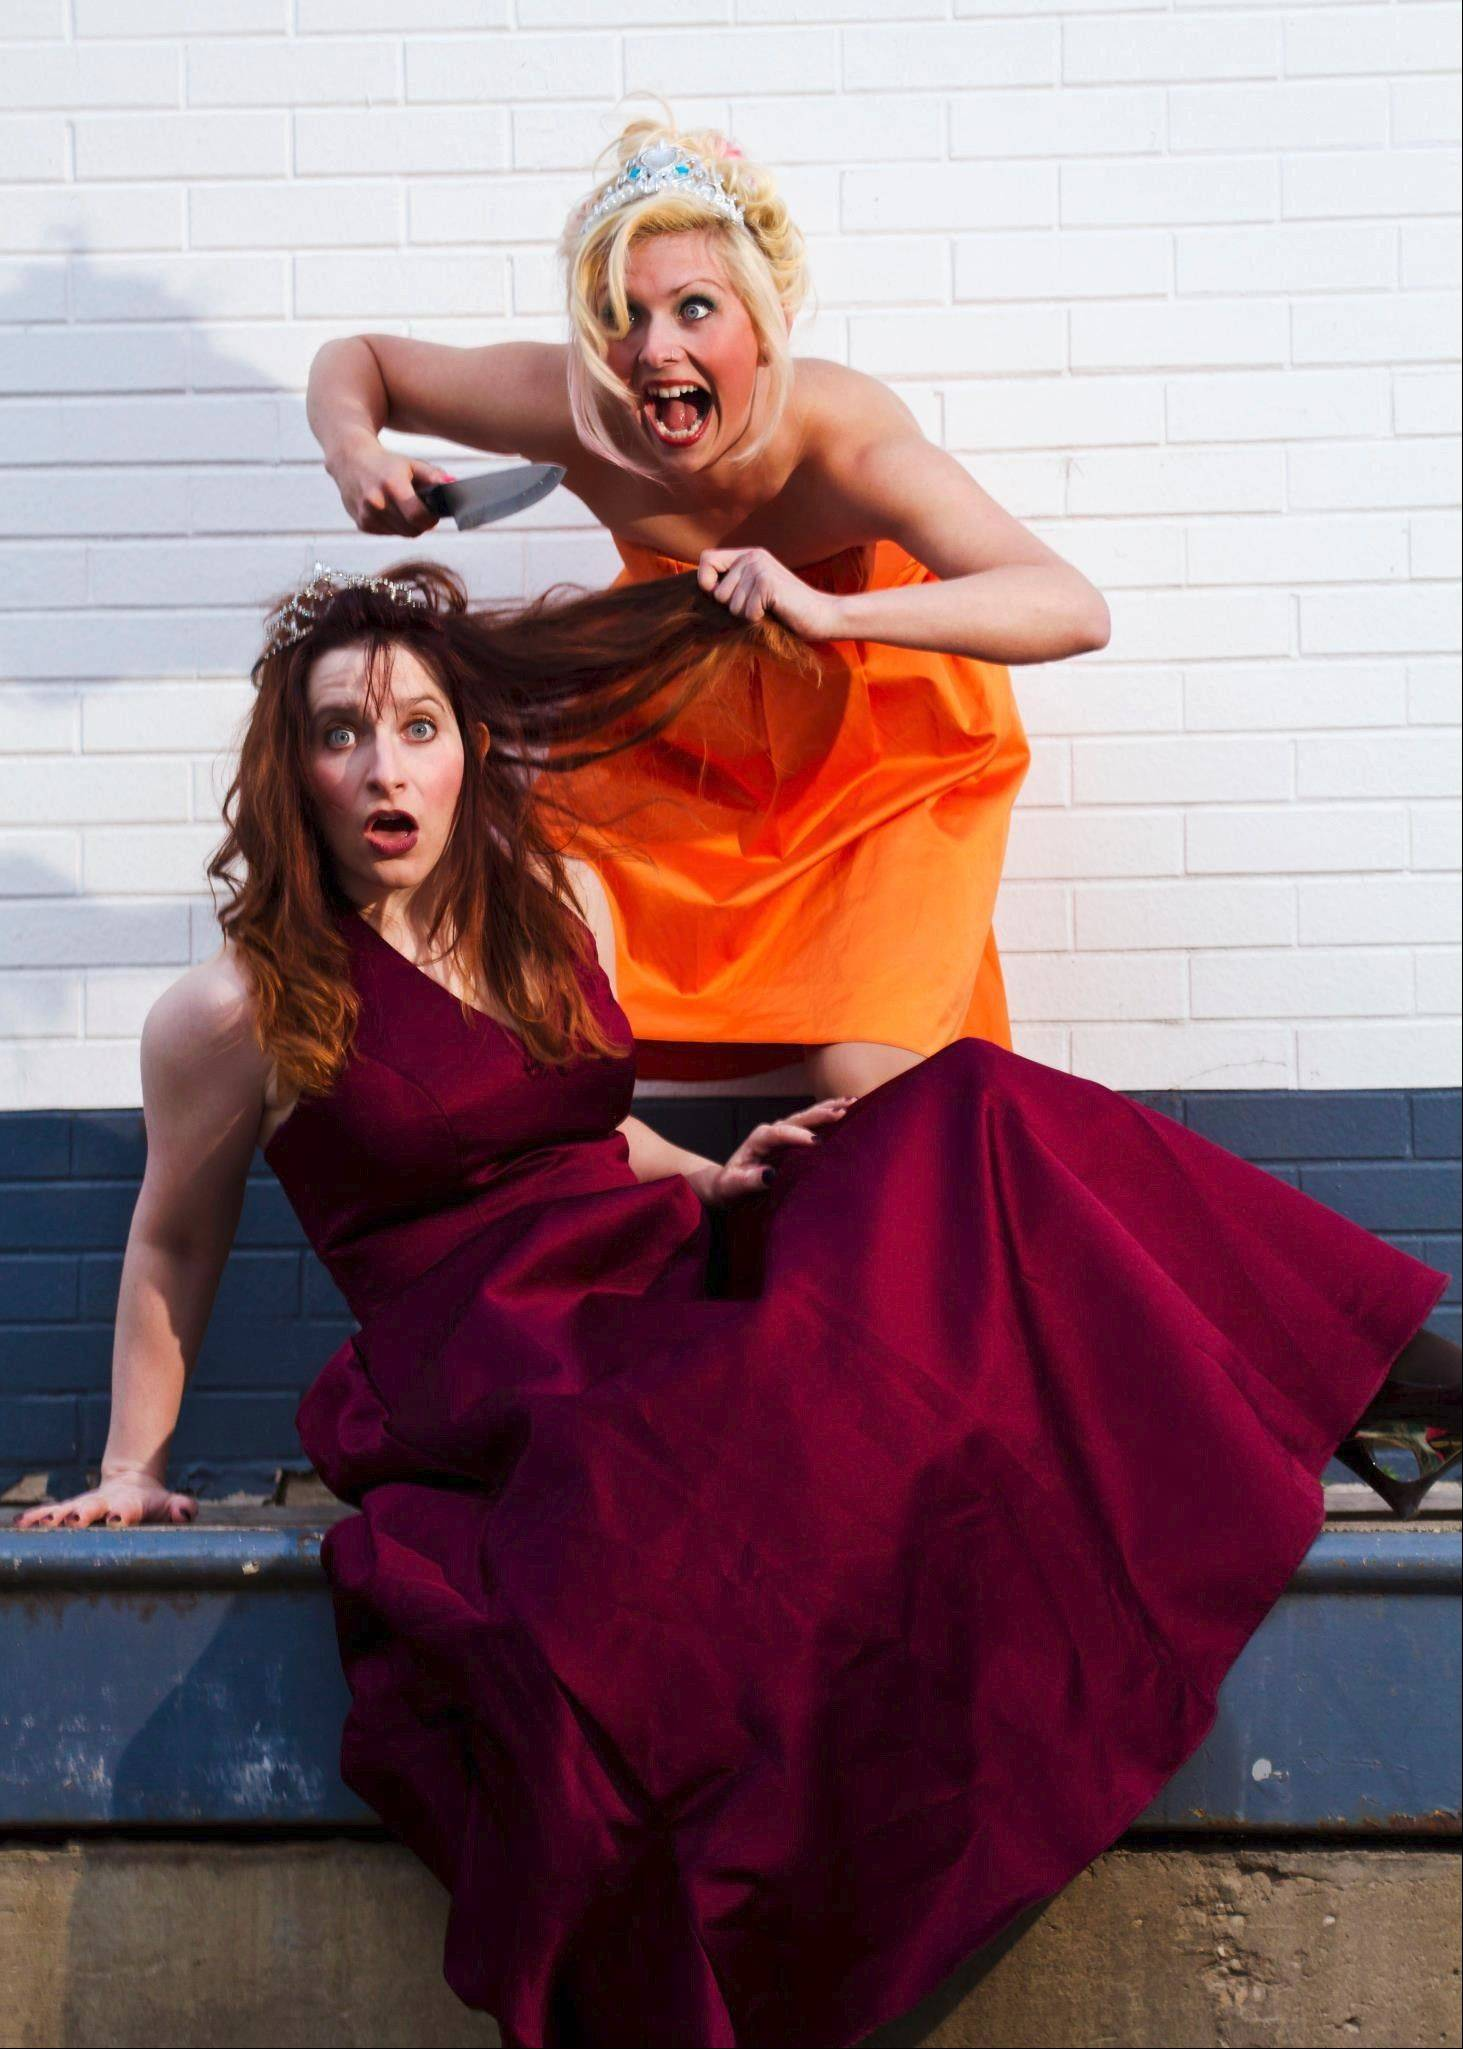 Katie Dufresne and Stacey Smith make up the sketch comedy duo Snooty Pageant, which performs at the 12th Annual Sketch Comedy Festival in Chicago.